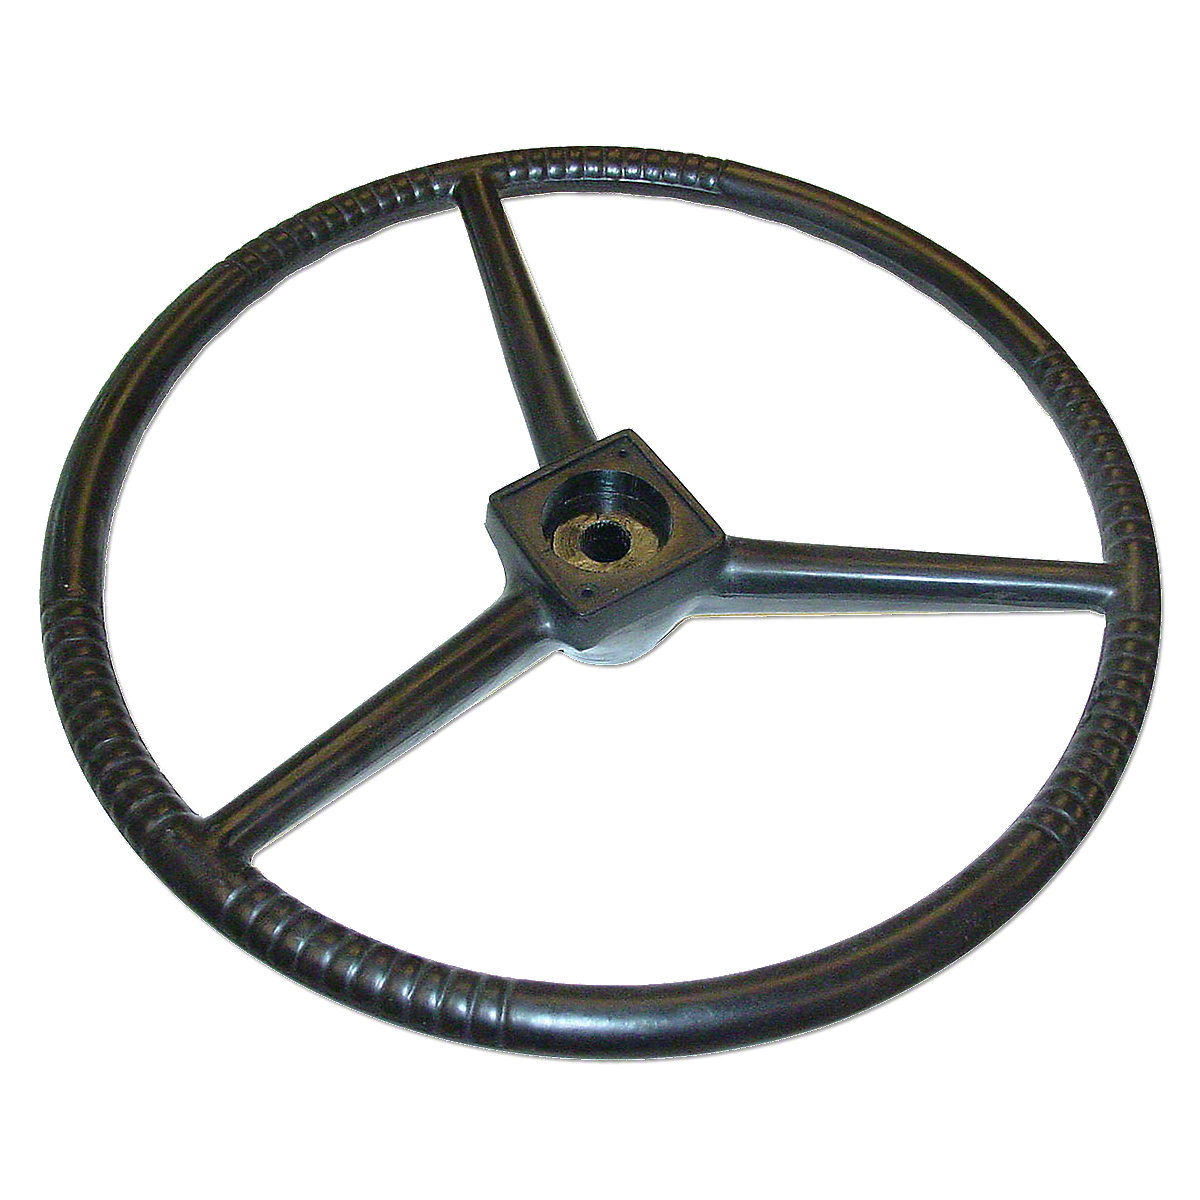 17-1/2 3 Spoke Steering Wheel For Allis Chalmers: D10, D12, D14, D15, D17, D19, D21.